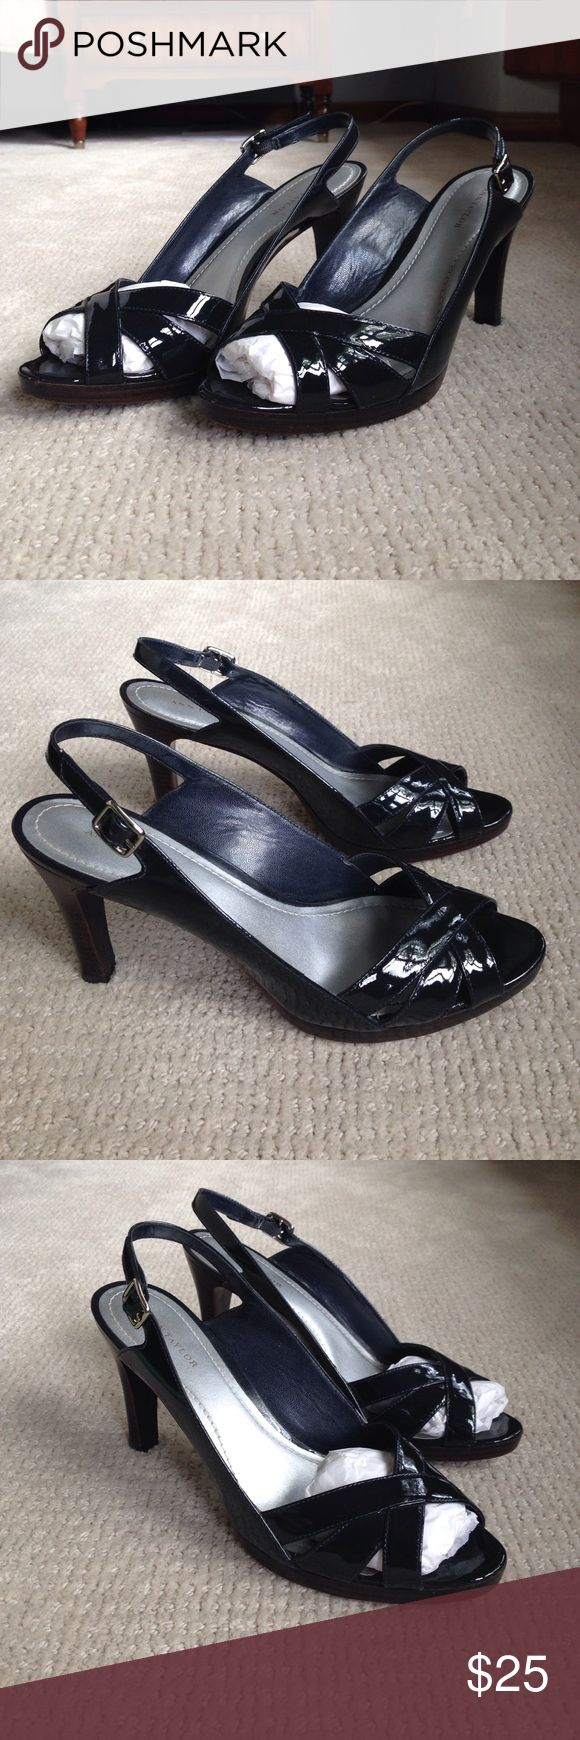 """Sz 9 Navy patent peep toe heel EUC. Ann Taylor navy patent peep toe heel.  Small platform bottom and criss cross detail on toe.  Comfortable shoe, fits a bit wider than most, but is not a """"wide"""" size. Ann Taylor Shoes Heels"""